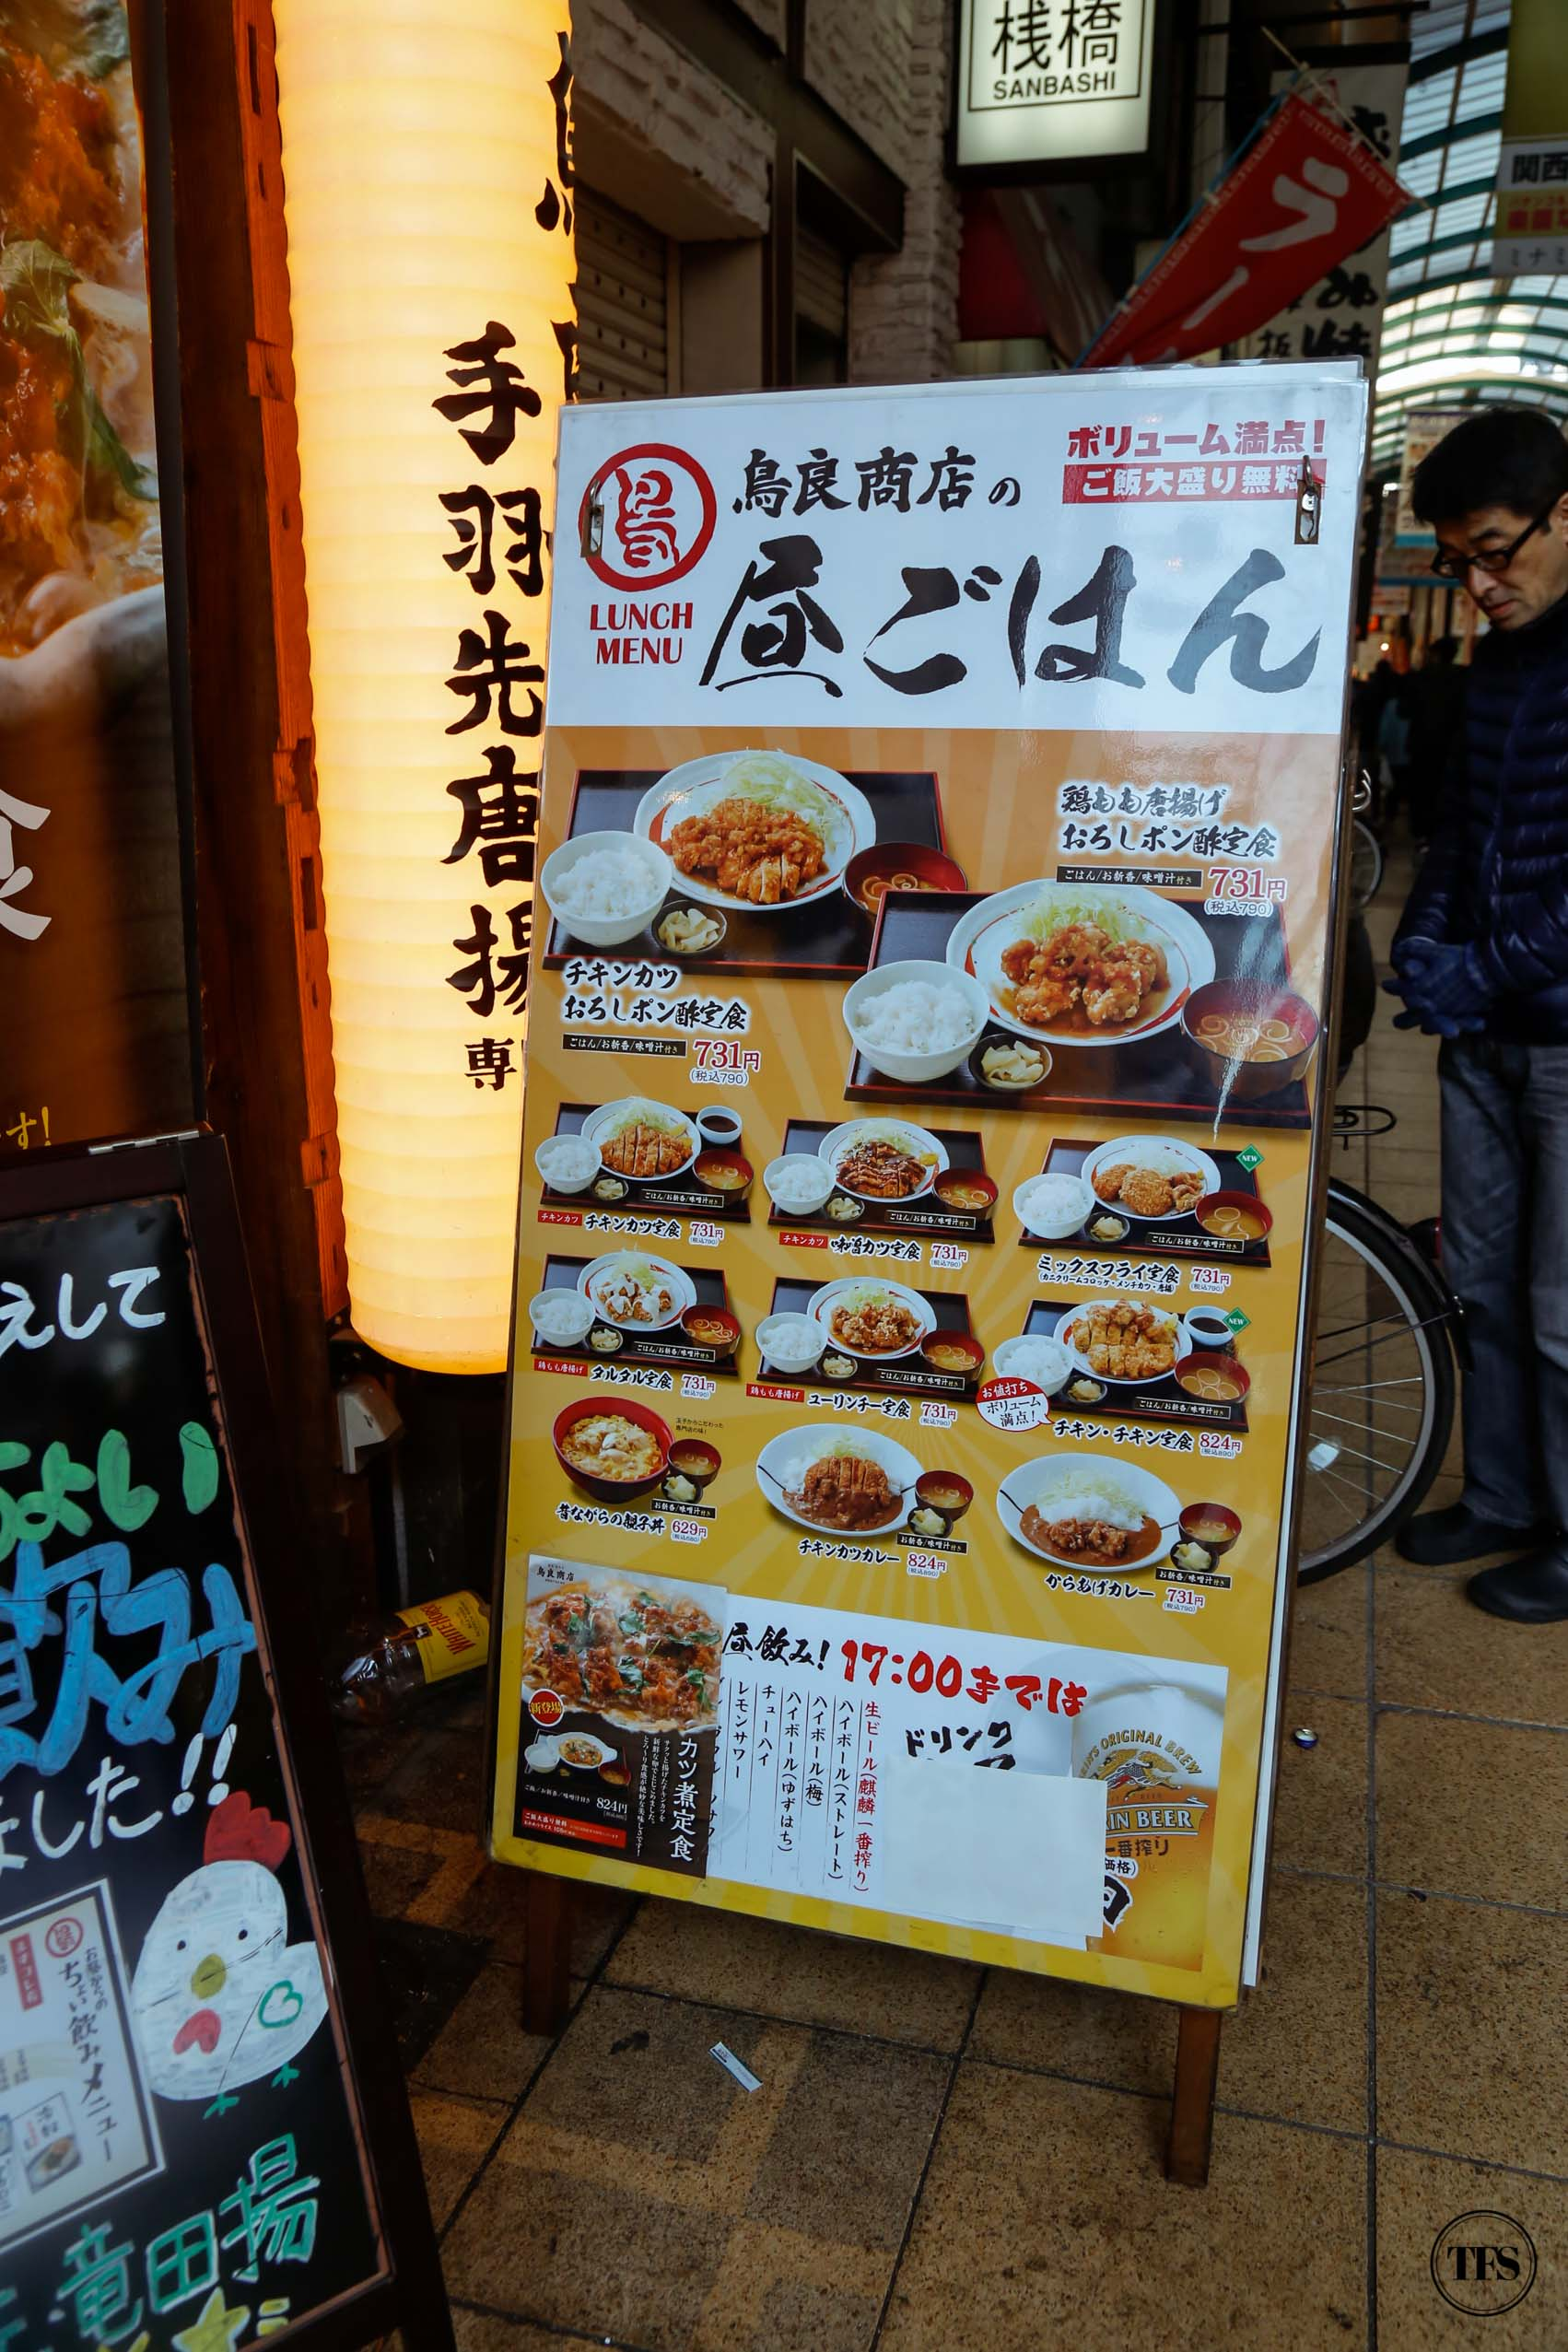 Osaka Japan Diary - A Day of Food Crawl - The Food Scout